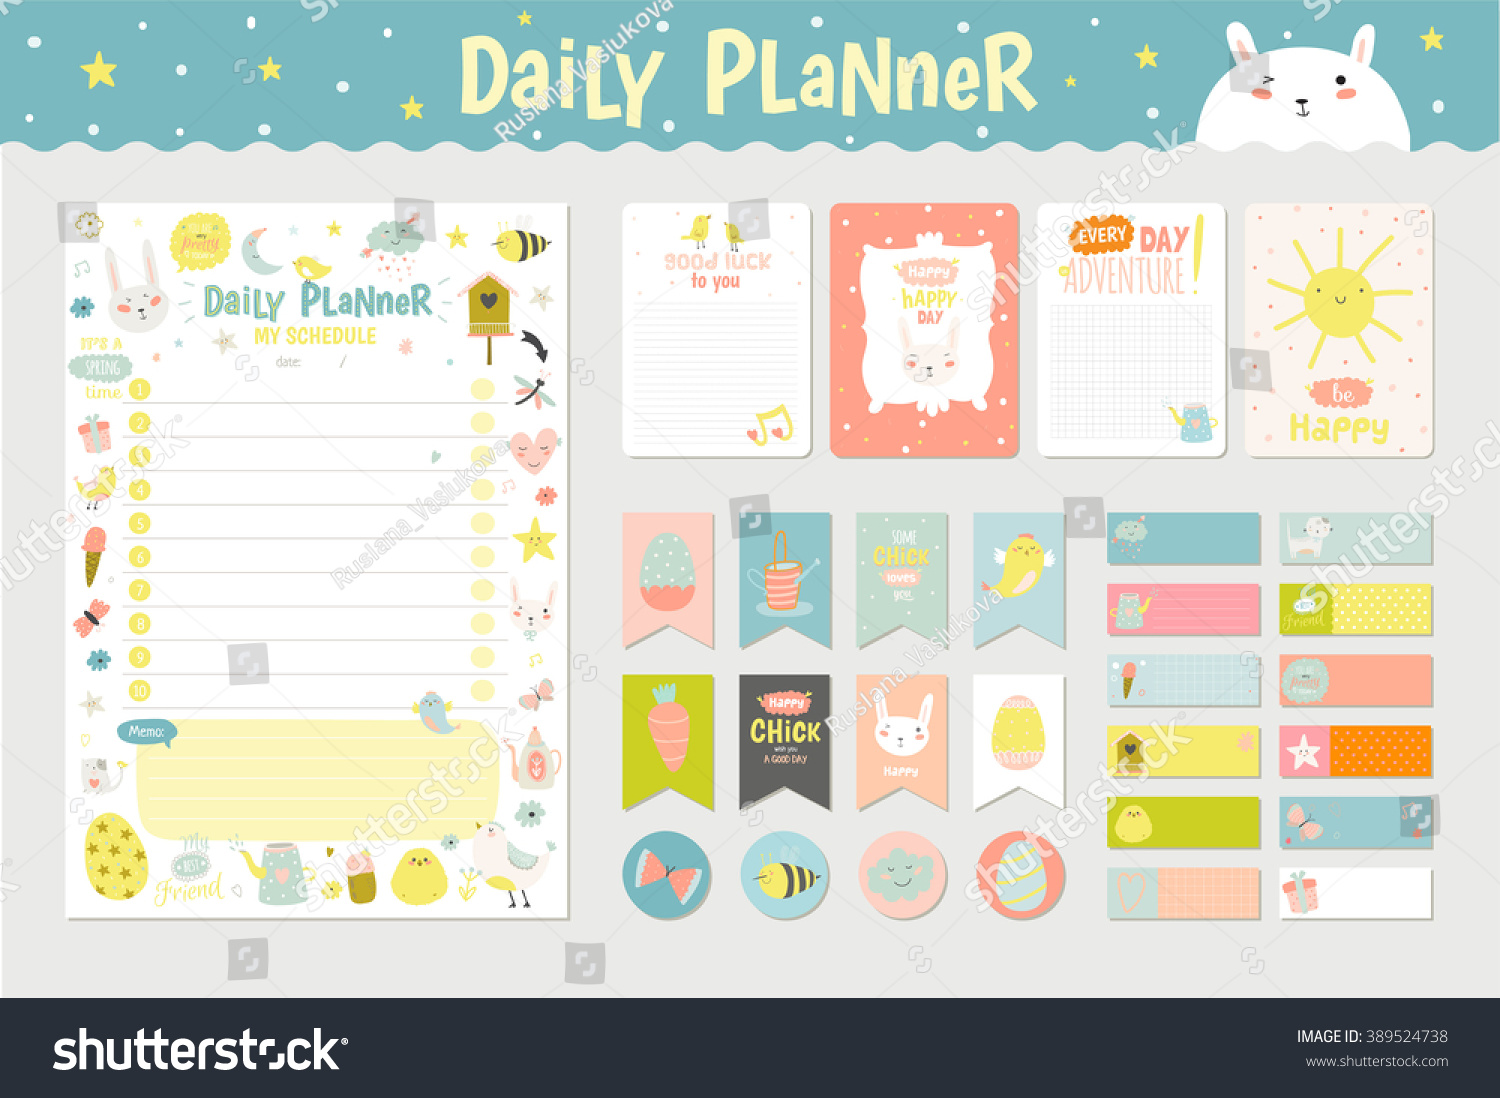 Cute Calendar Daily Planner Template for 2016. Beautiful Diary with ...